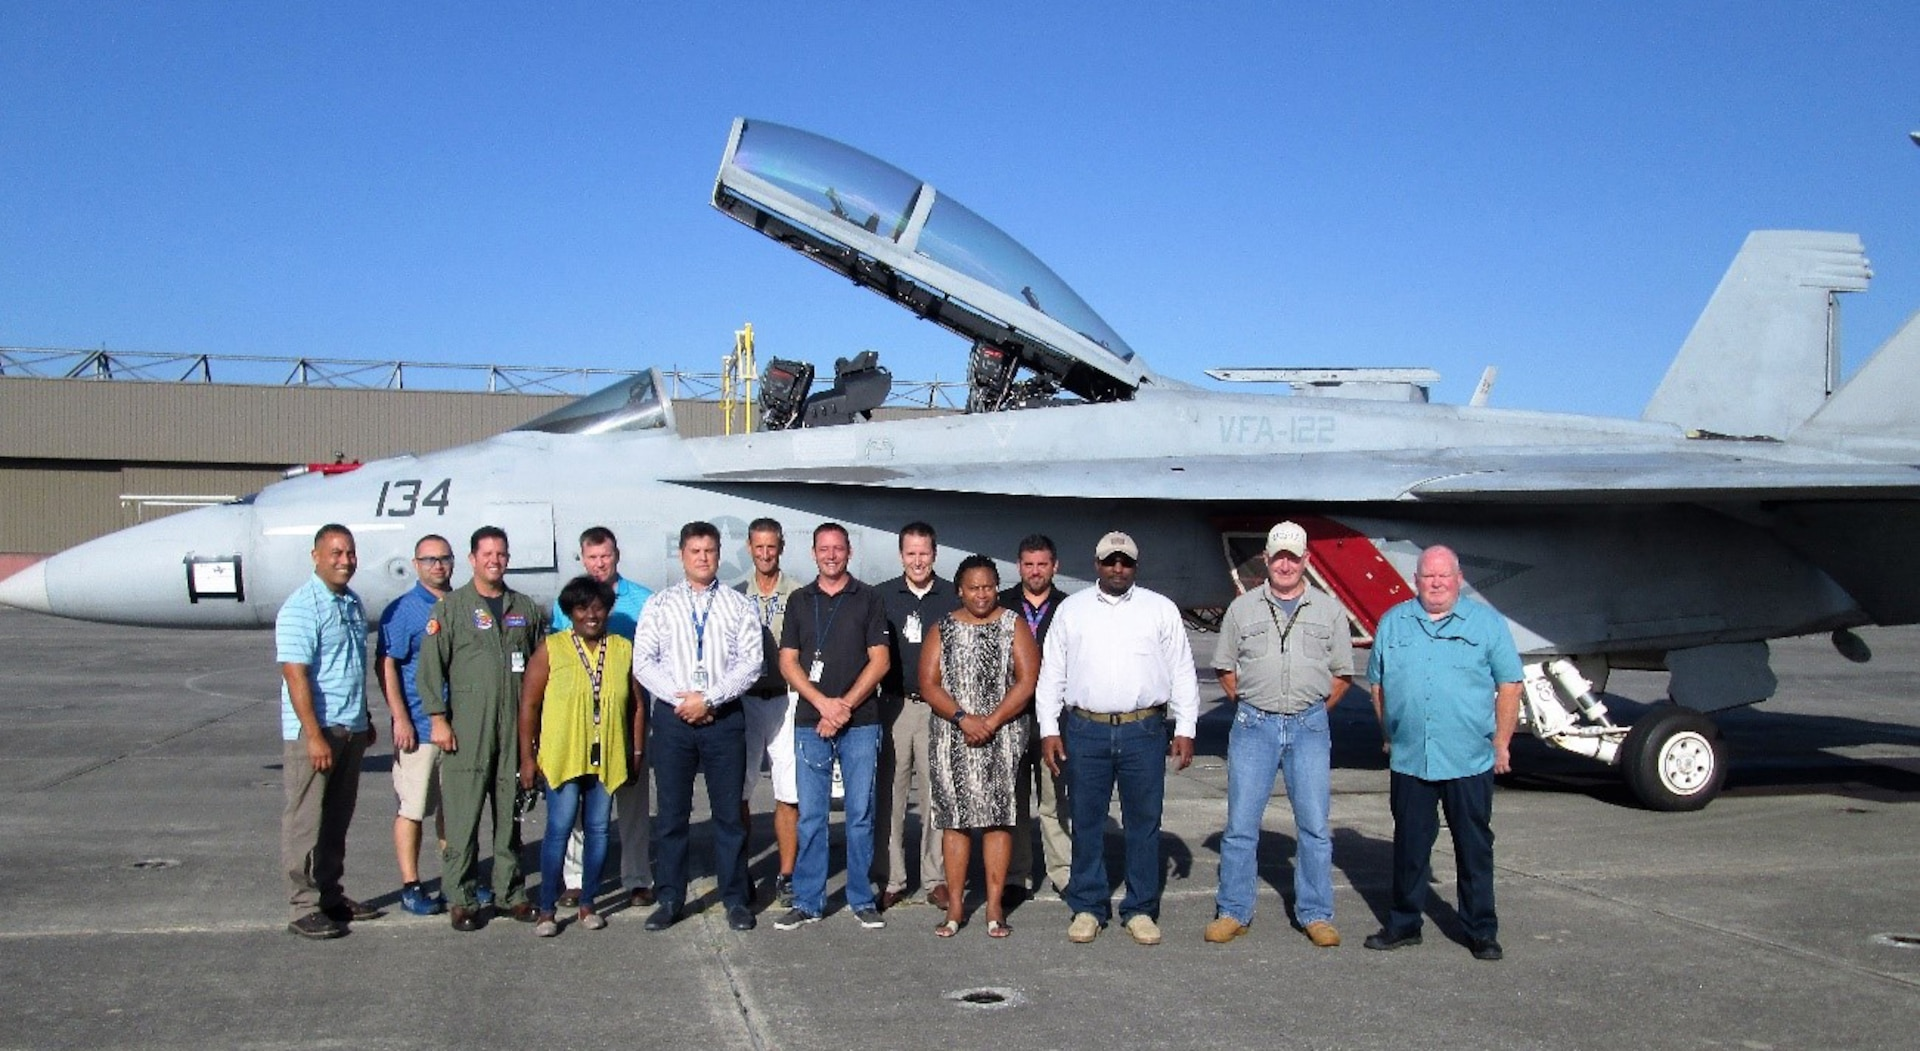 Group photo of males and females standing in front of a jet